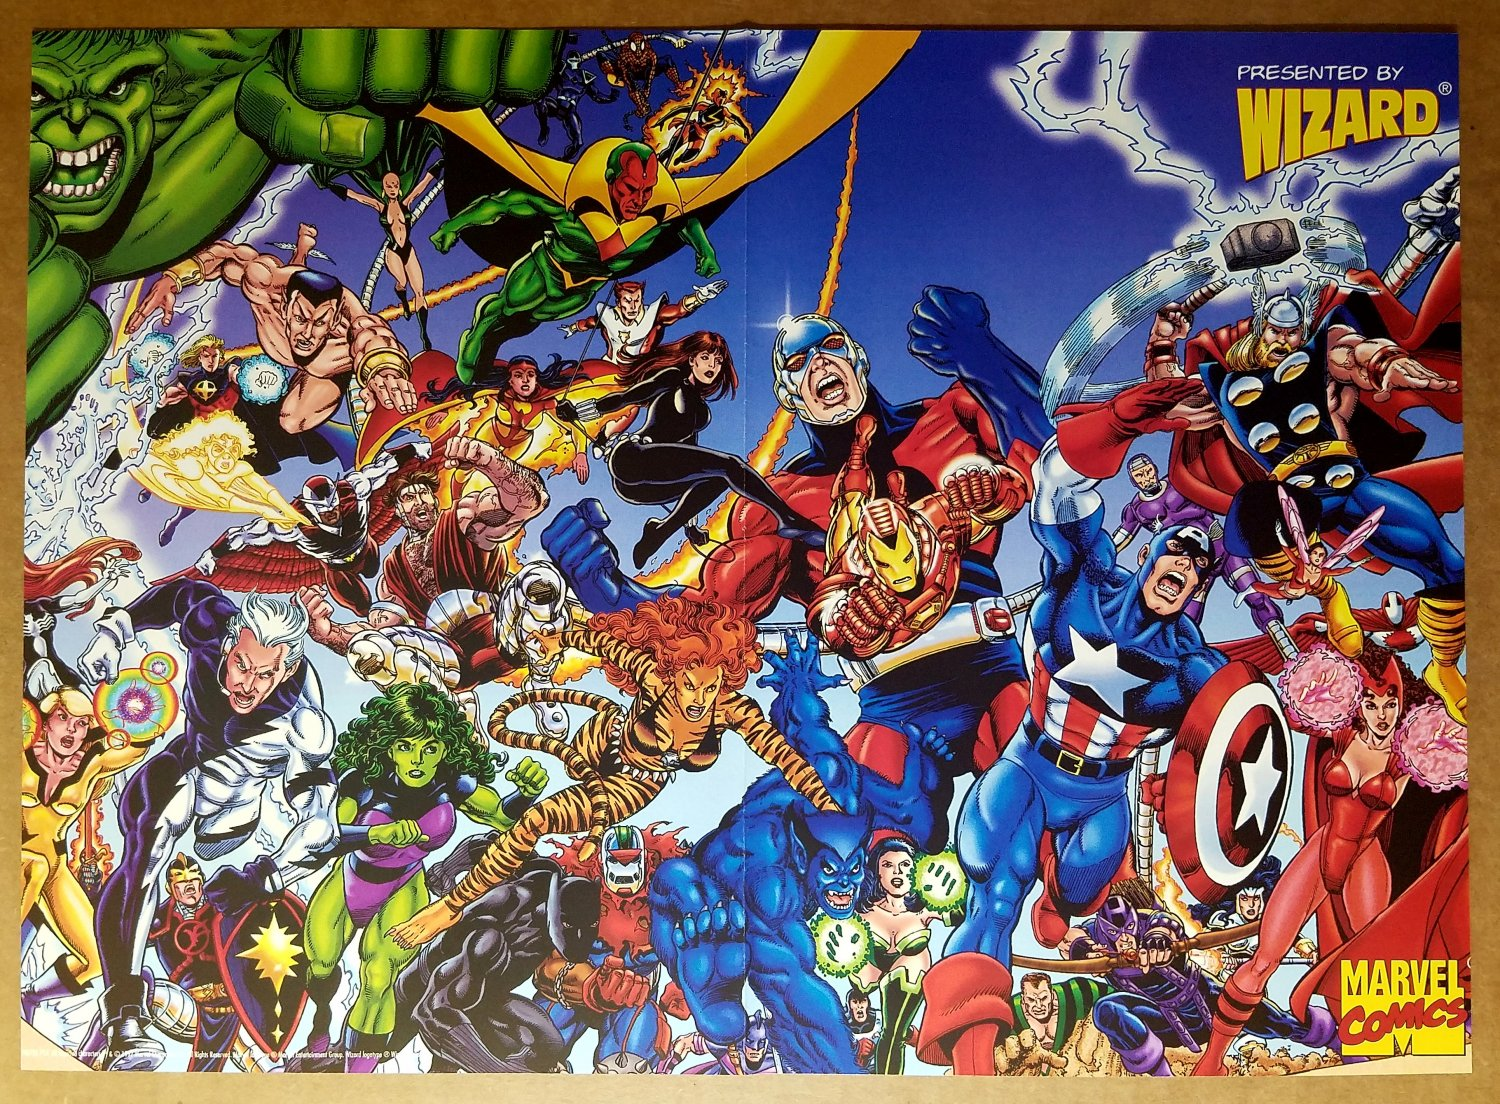 Avengers Captain America Black Widow Black Panther Marvel Poster by George Perez